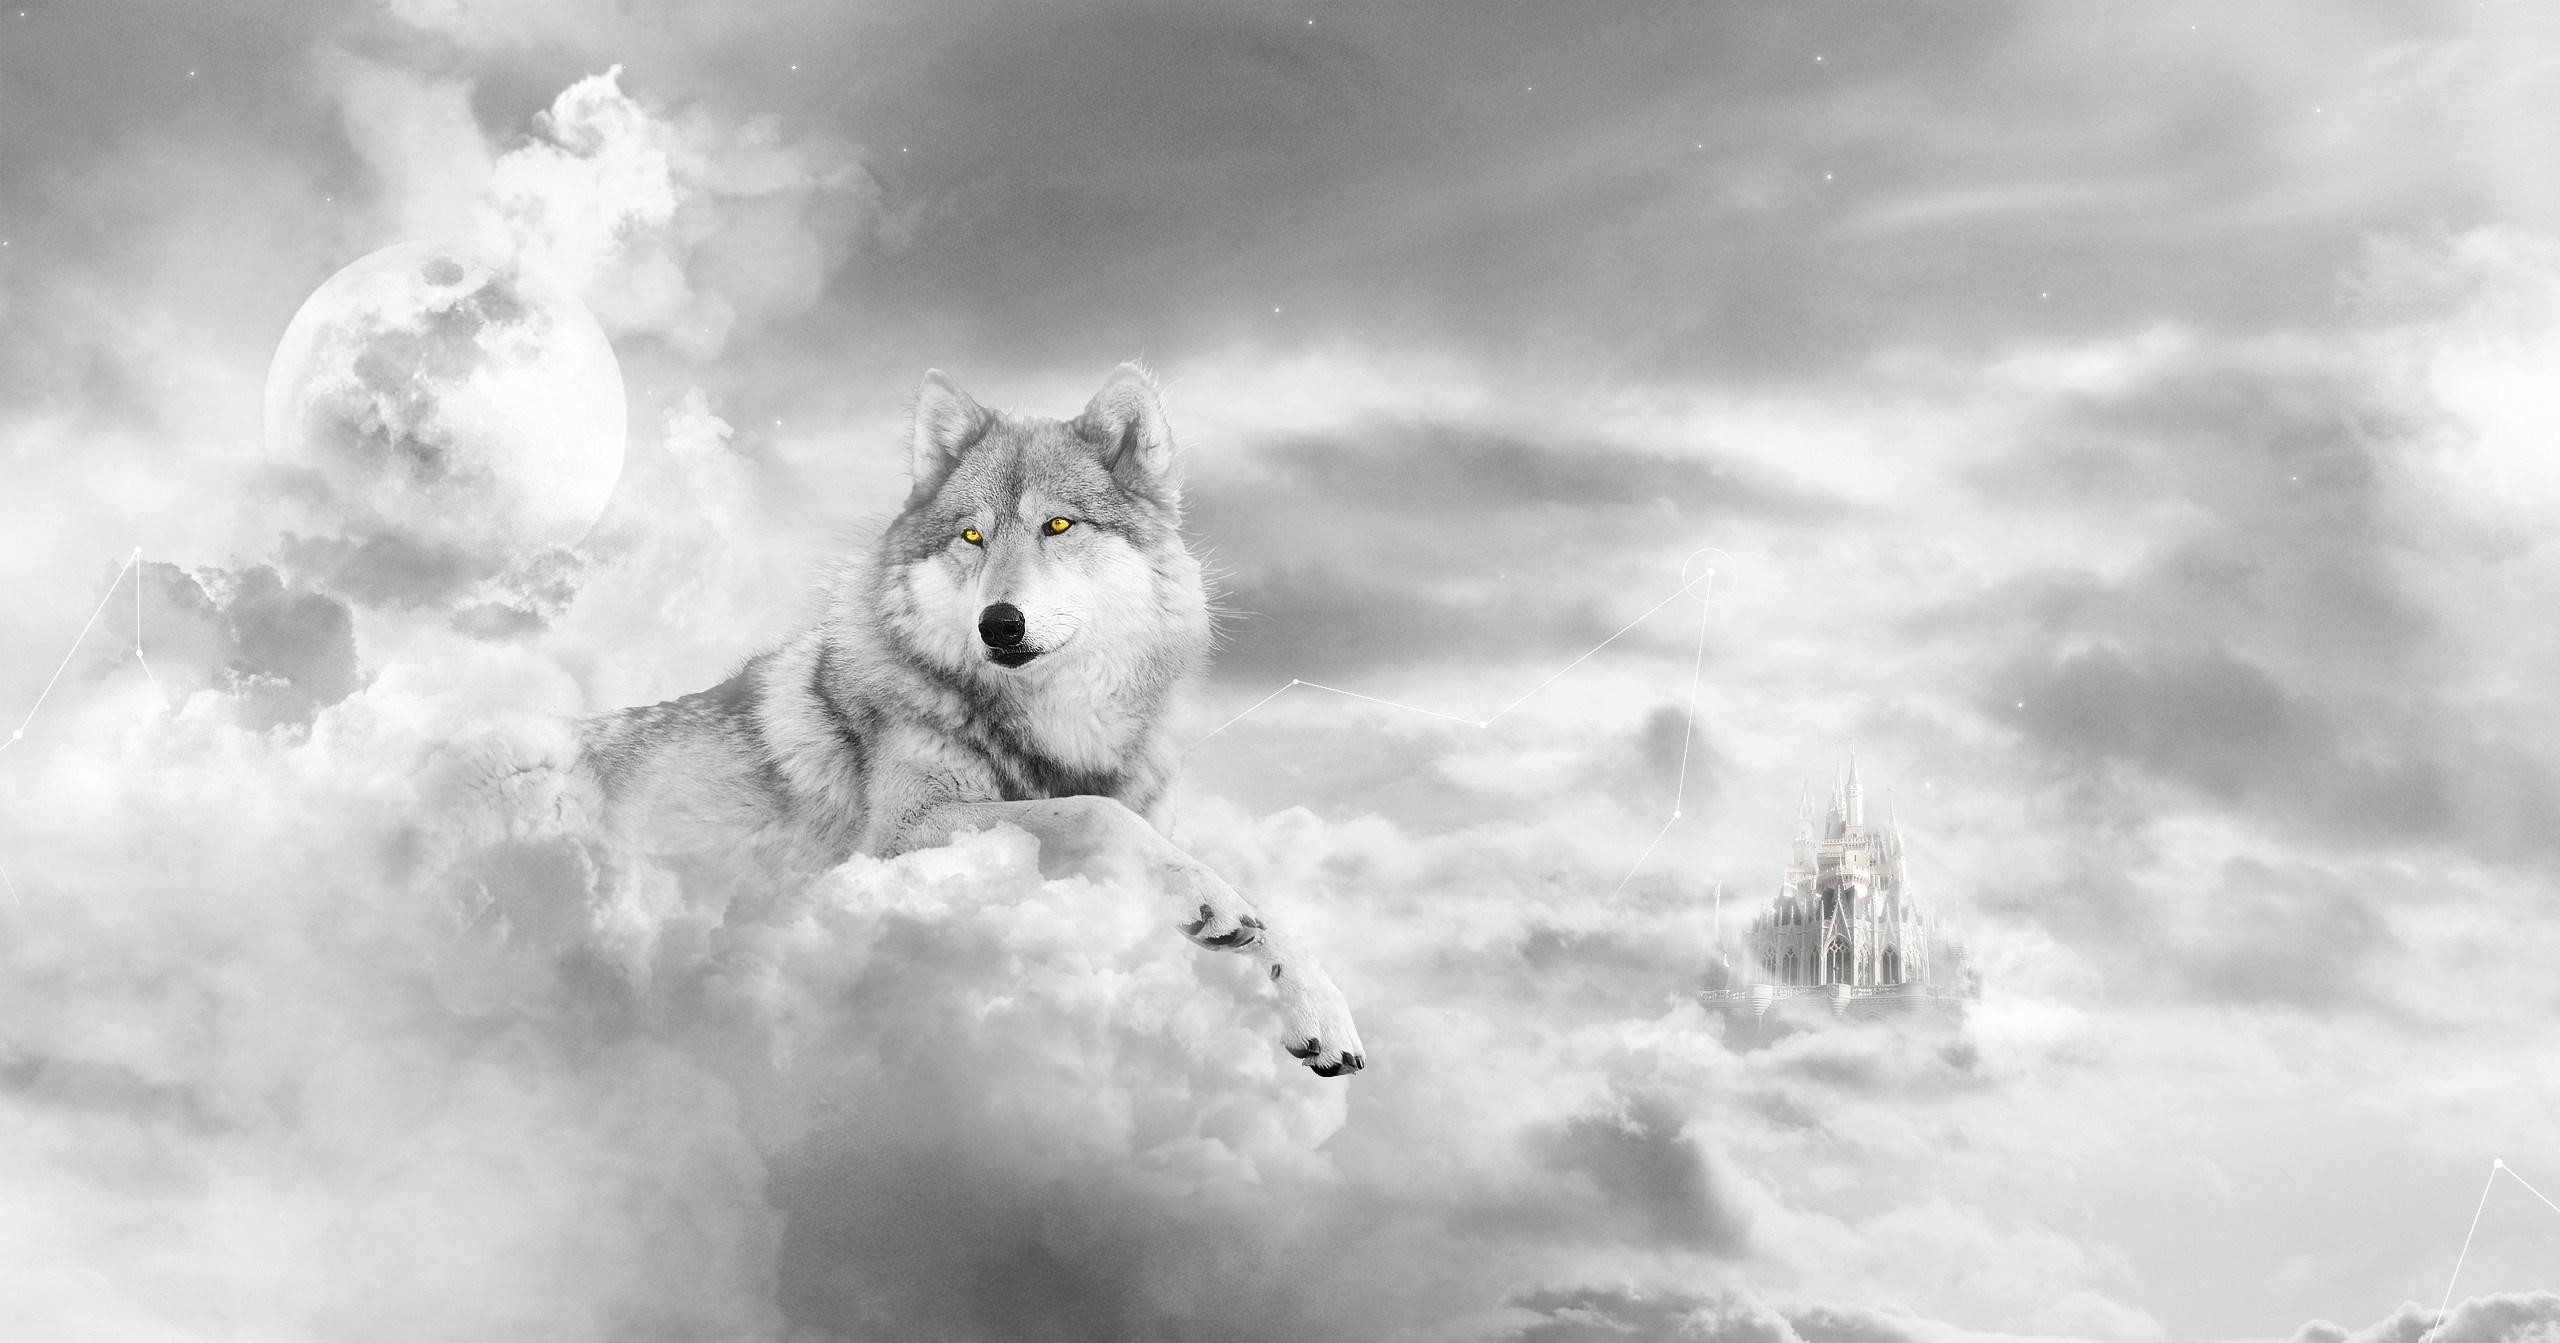 cool wolf in the clouds wallpaper Check more at https://www.finewallpapers